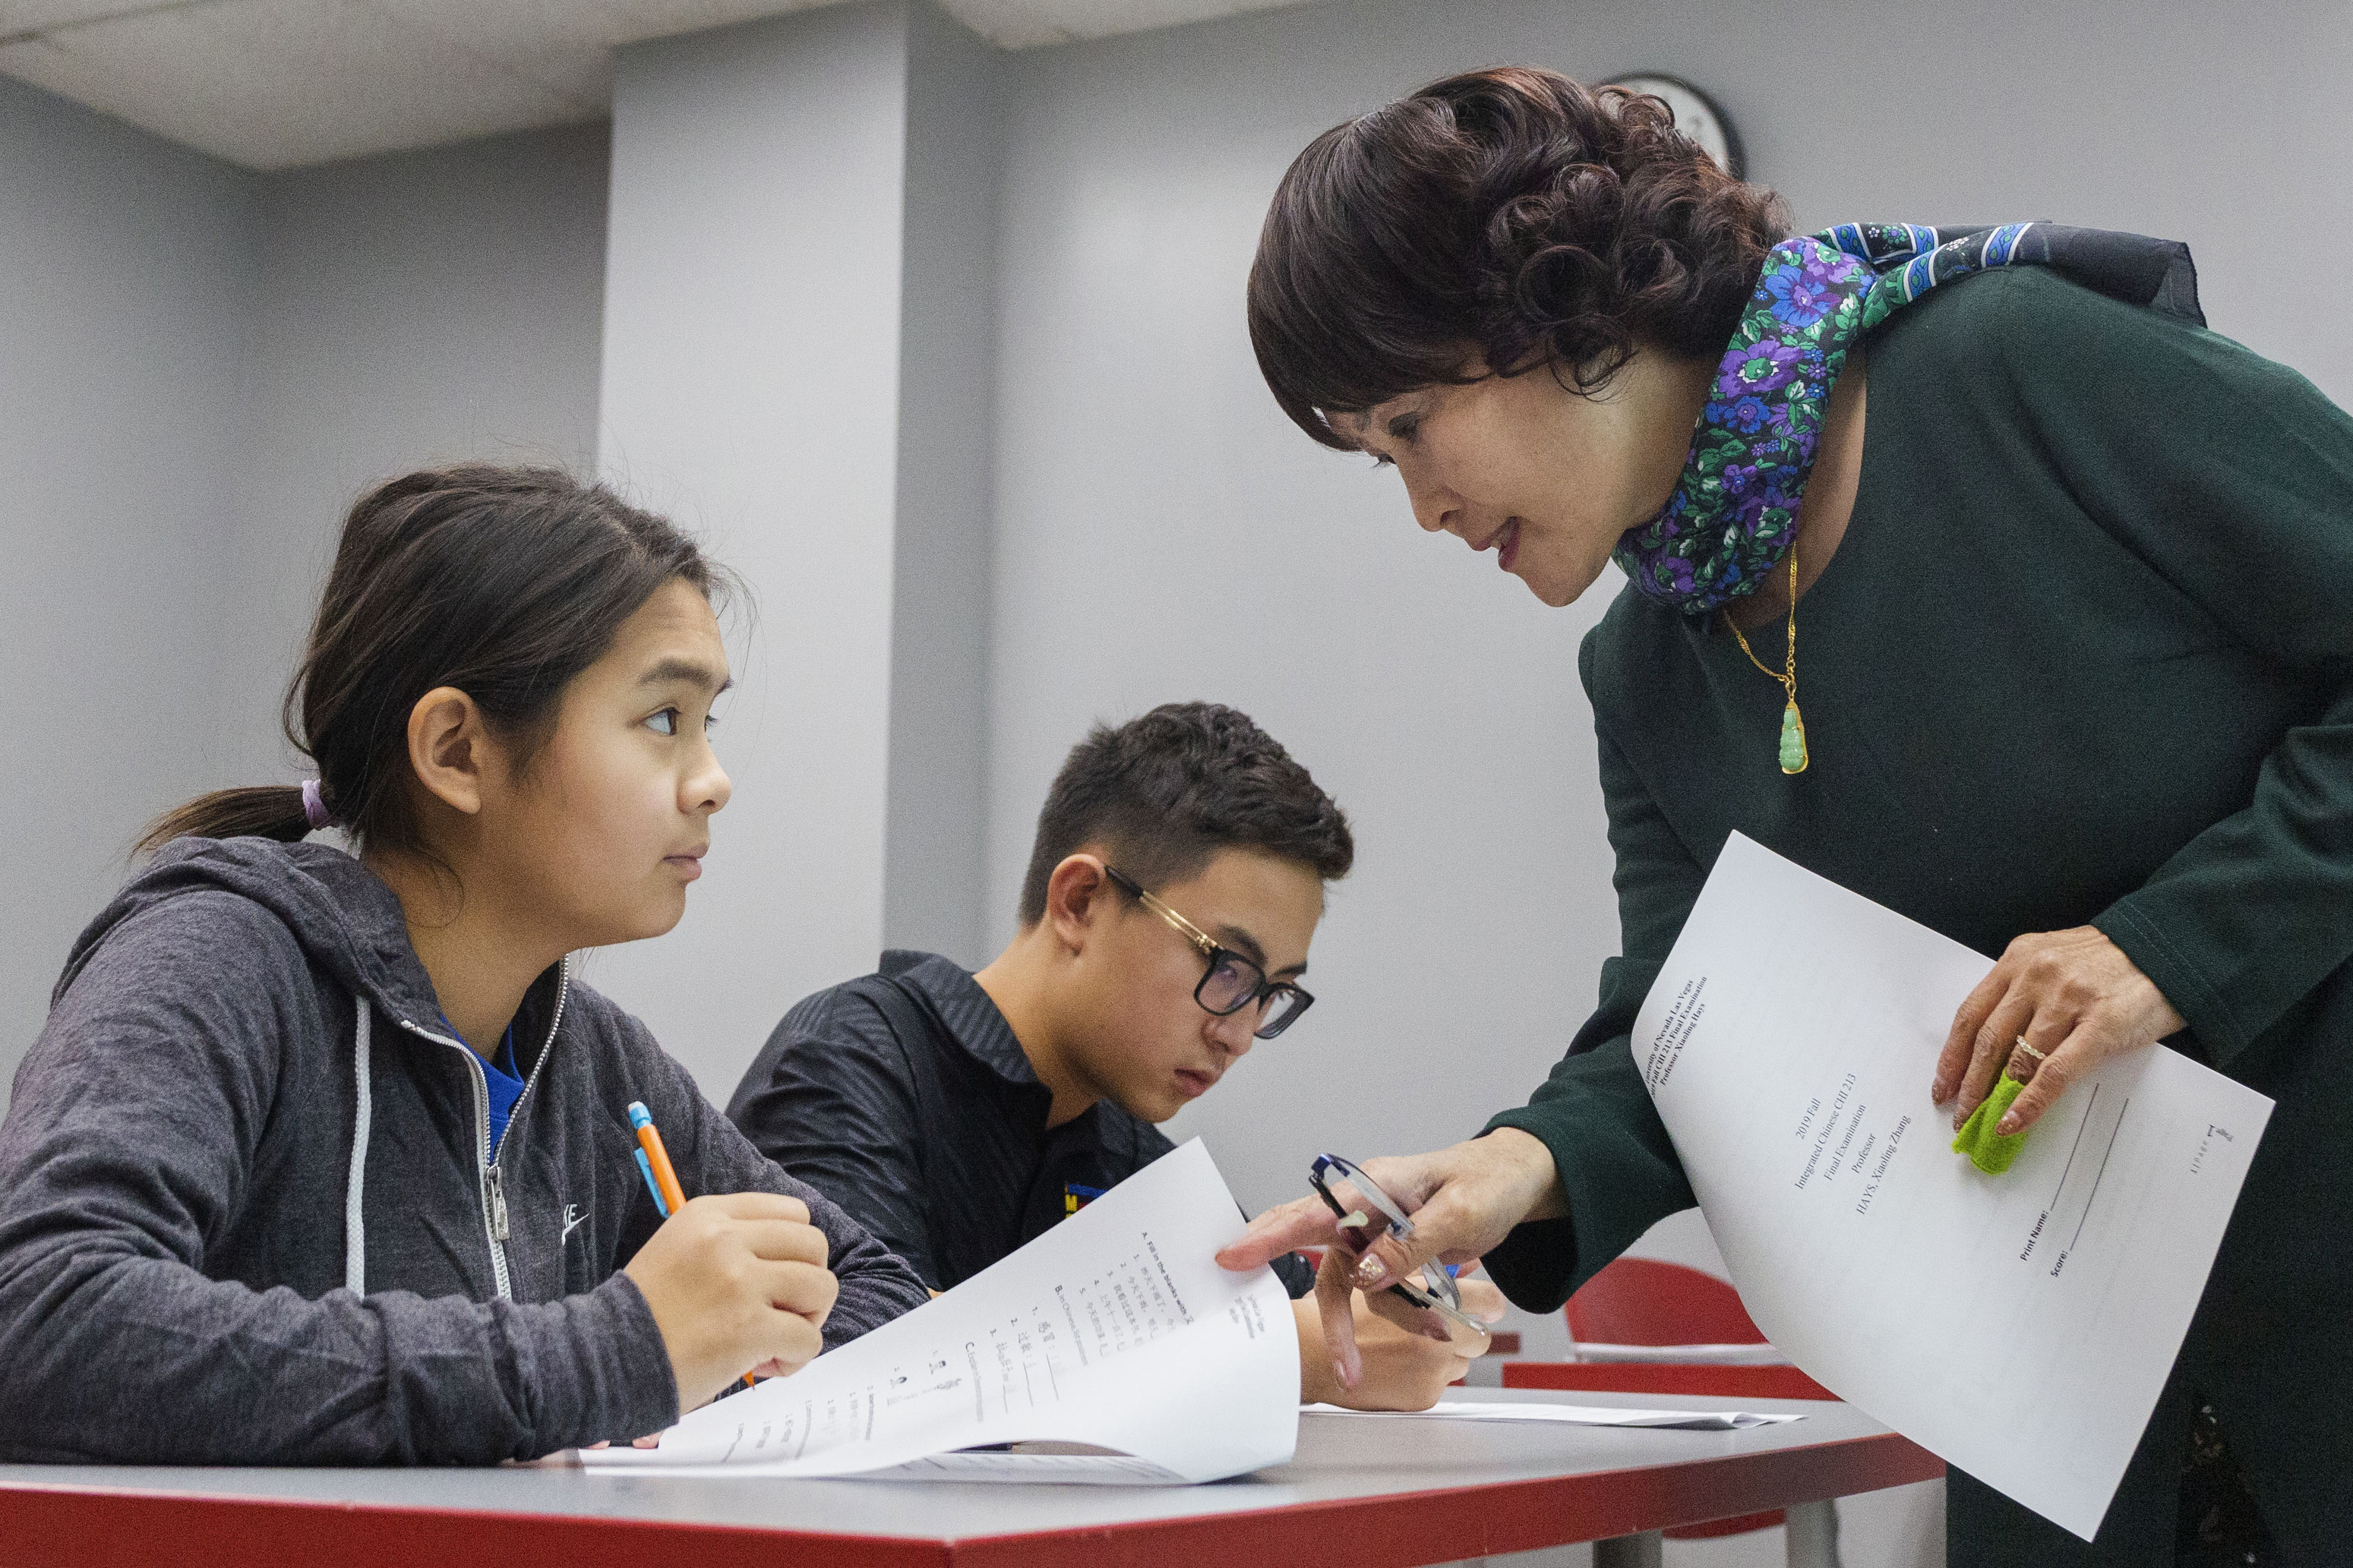 Siblings Among Youngest Full Time Students At Unlv Video Las Vegas Review Journal